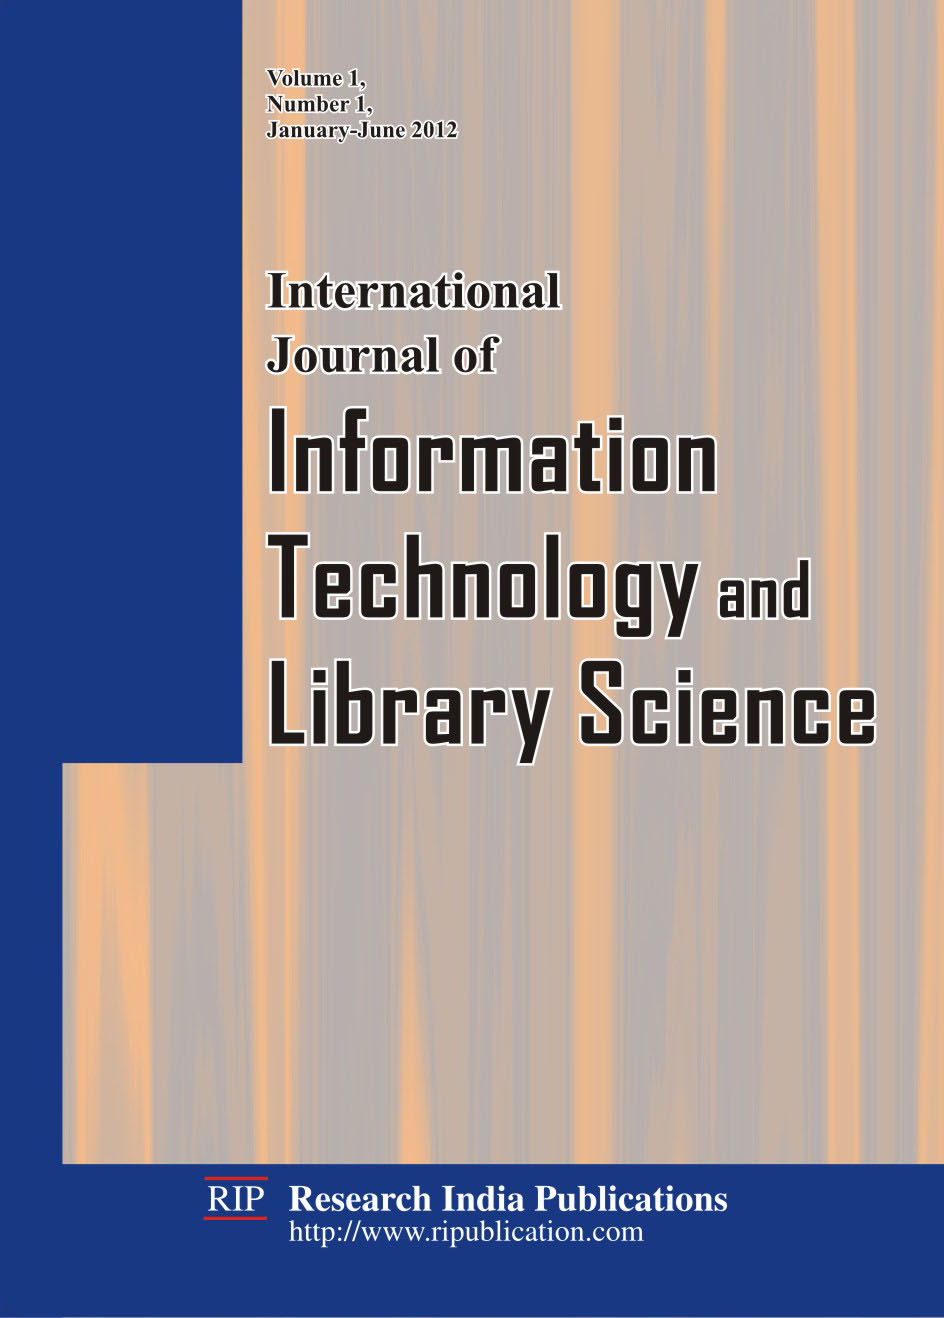 information technology journals The journal of education and information technologies (eait) is a platform for the range of debates and issues in the field of computing education as well as the many uses of information and communication technology (ict) across many educational subjects and sectors.